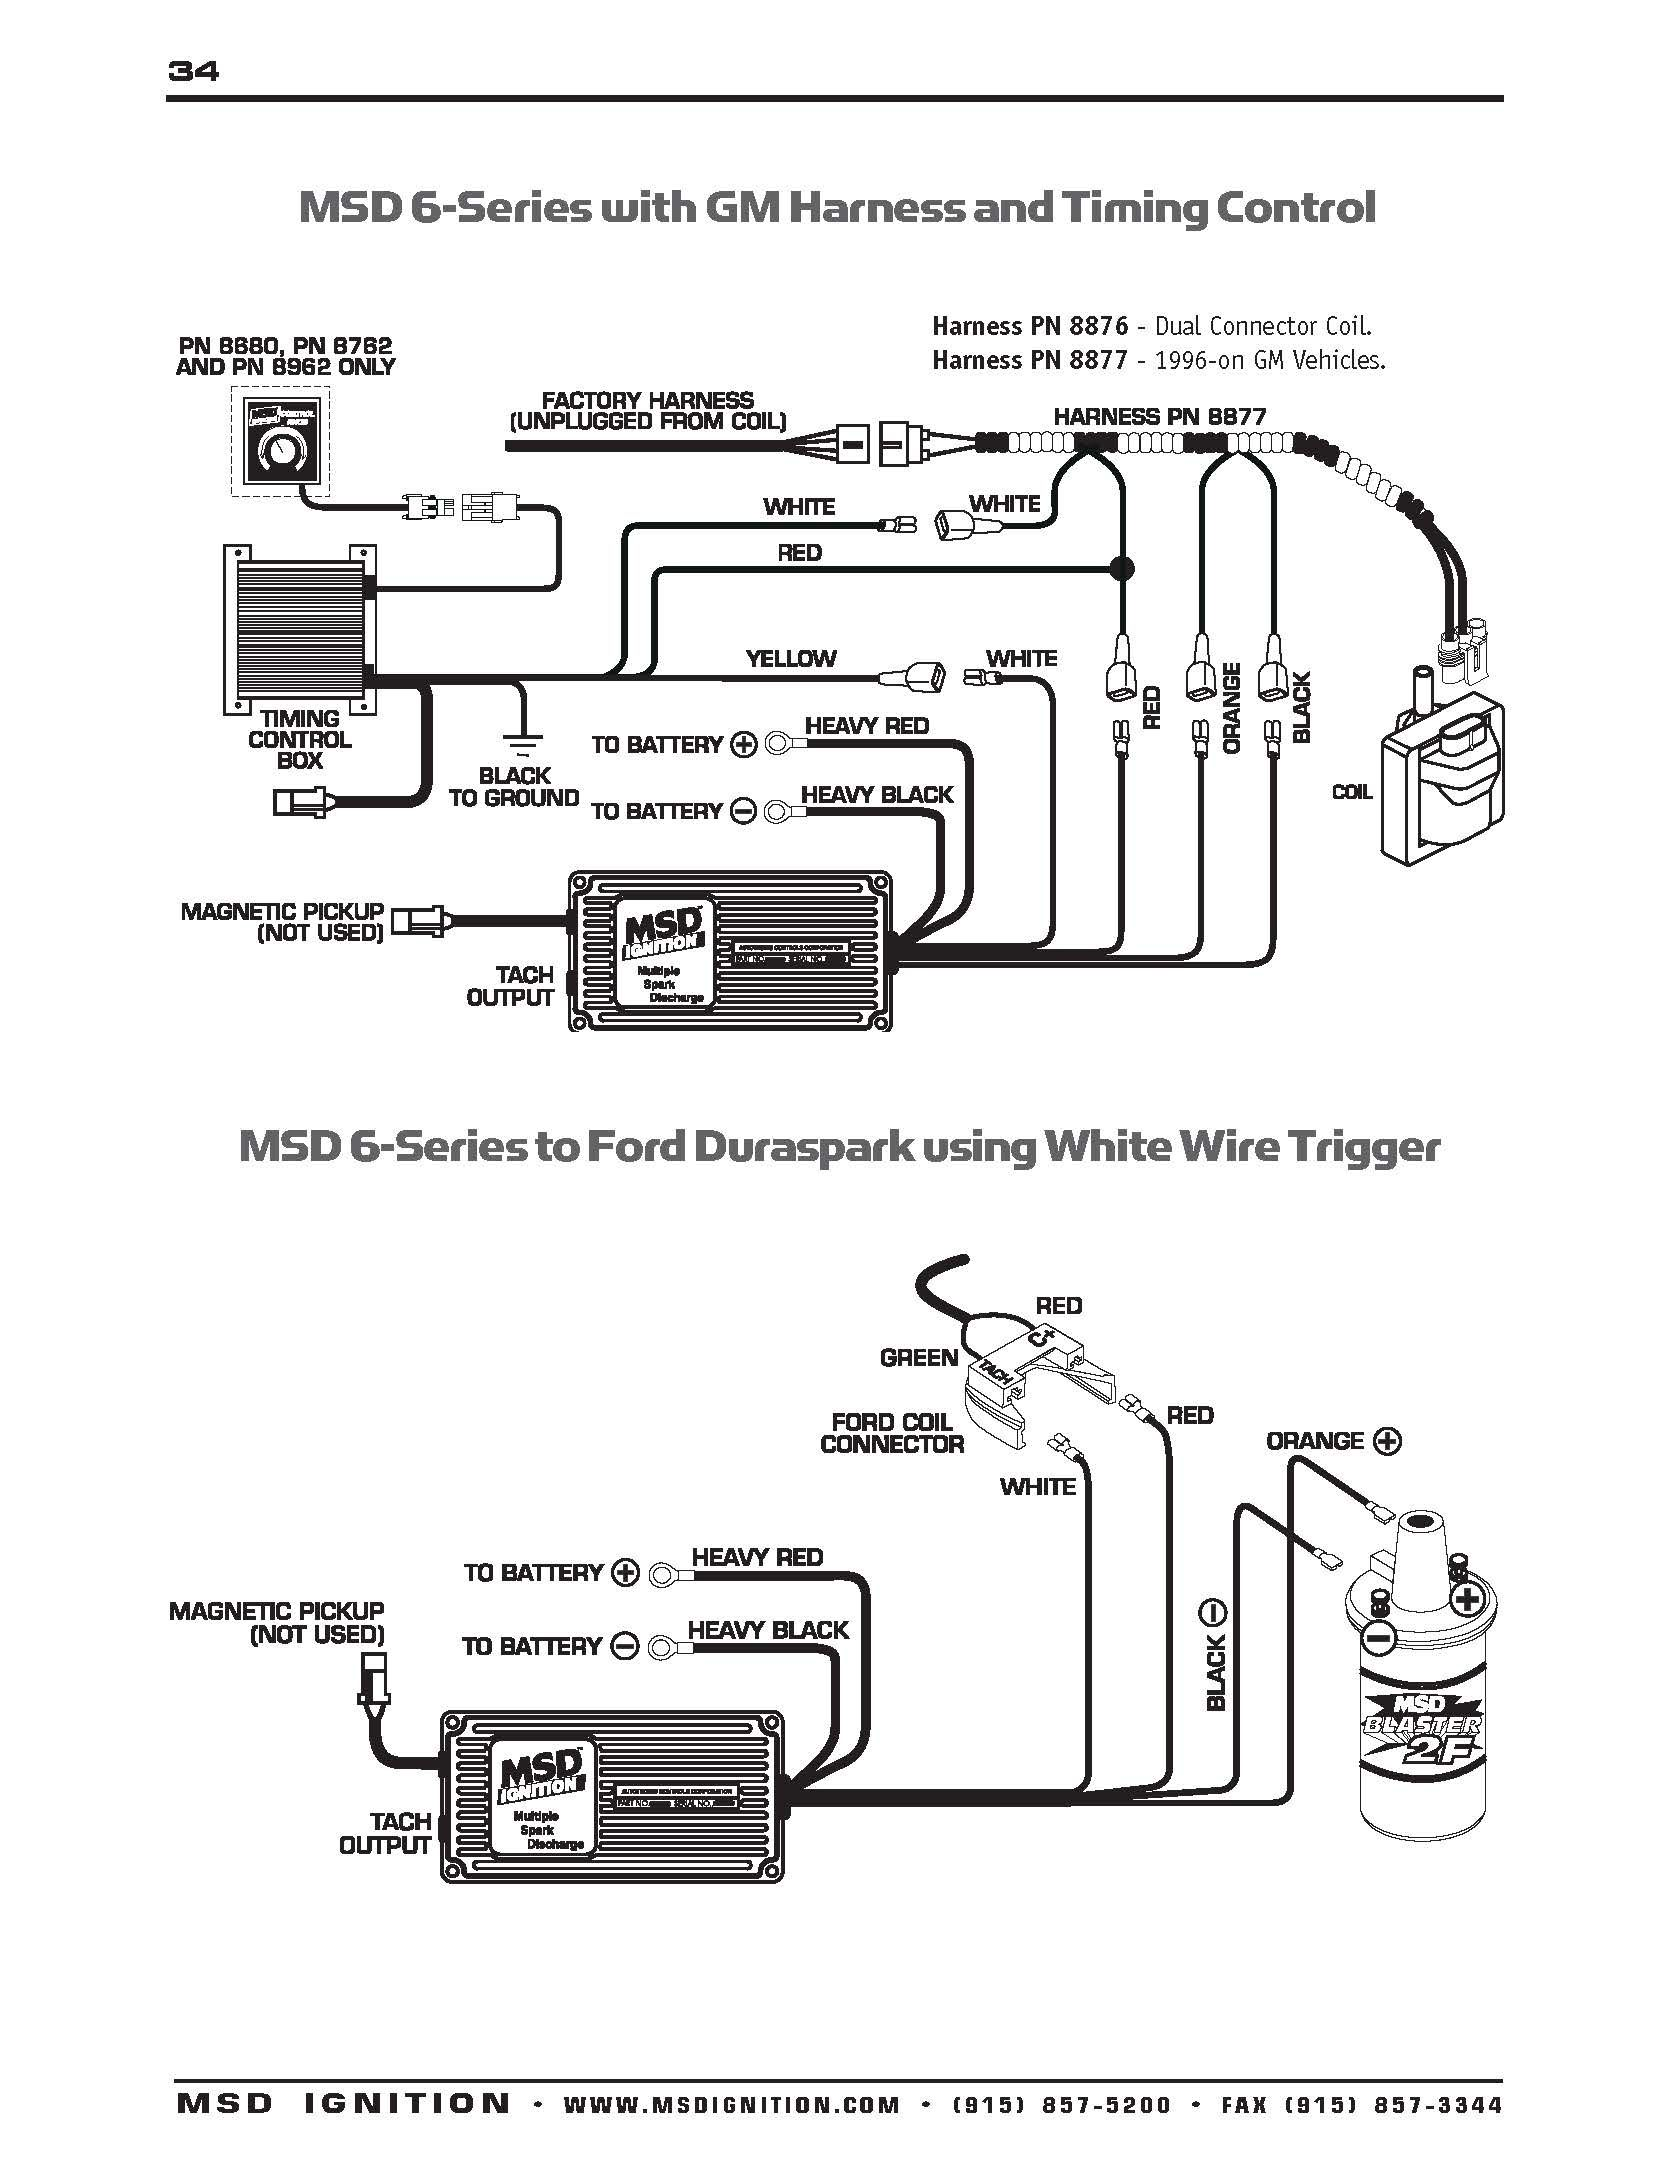 Distributor Wiring Diagram : distributor, wiring, diagram, Distributor, Wiring, Diagram, Idaho, Diagram,, Wire,, Ignition